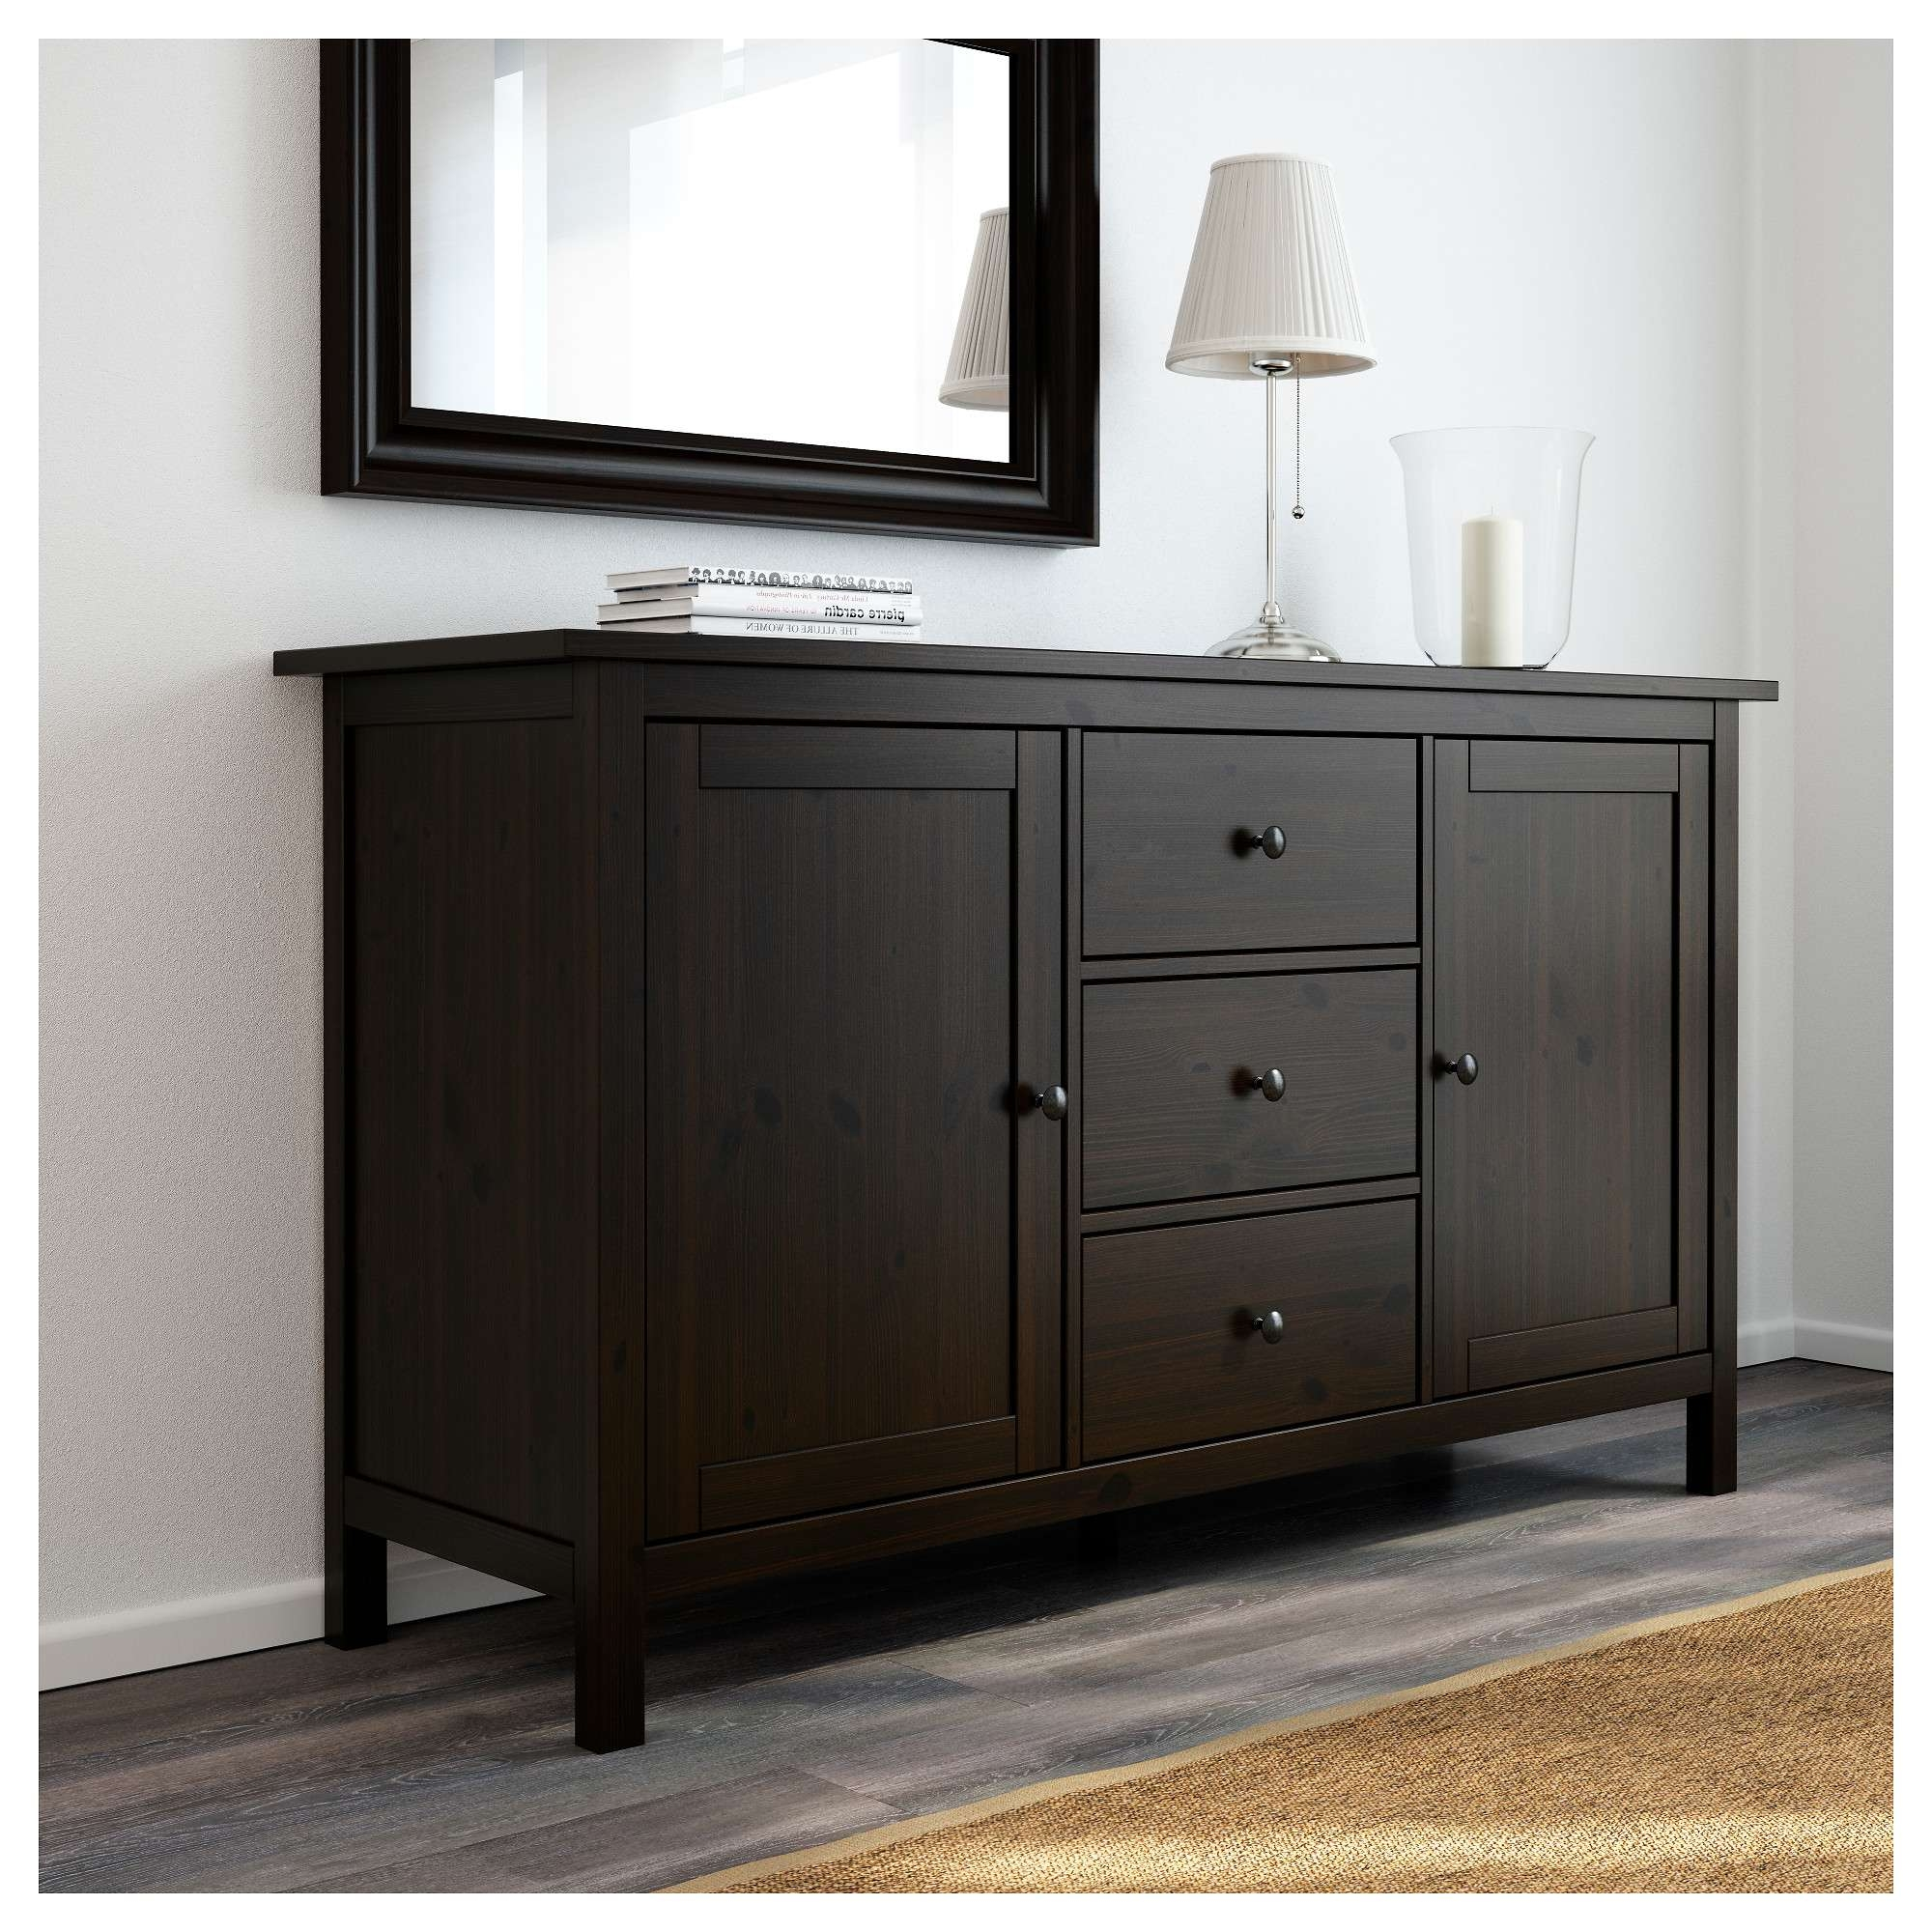 Hemnes Sideboard Black Brown 157x88 Cm – Ikea Regarding Black Sideboards (View 2 of 20)